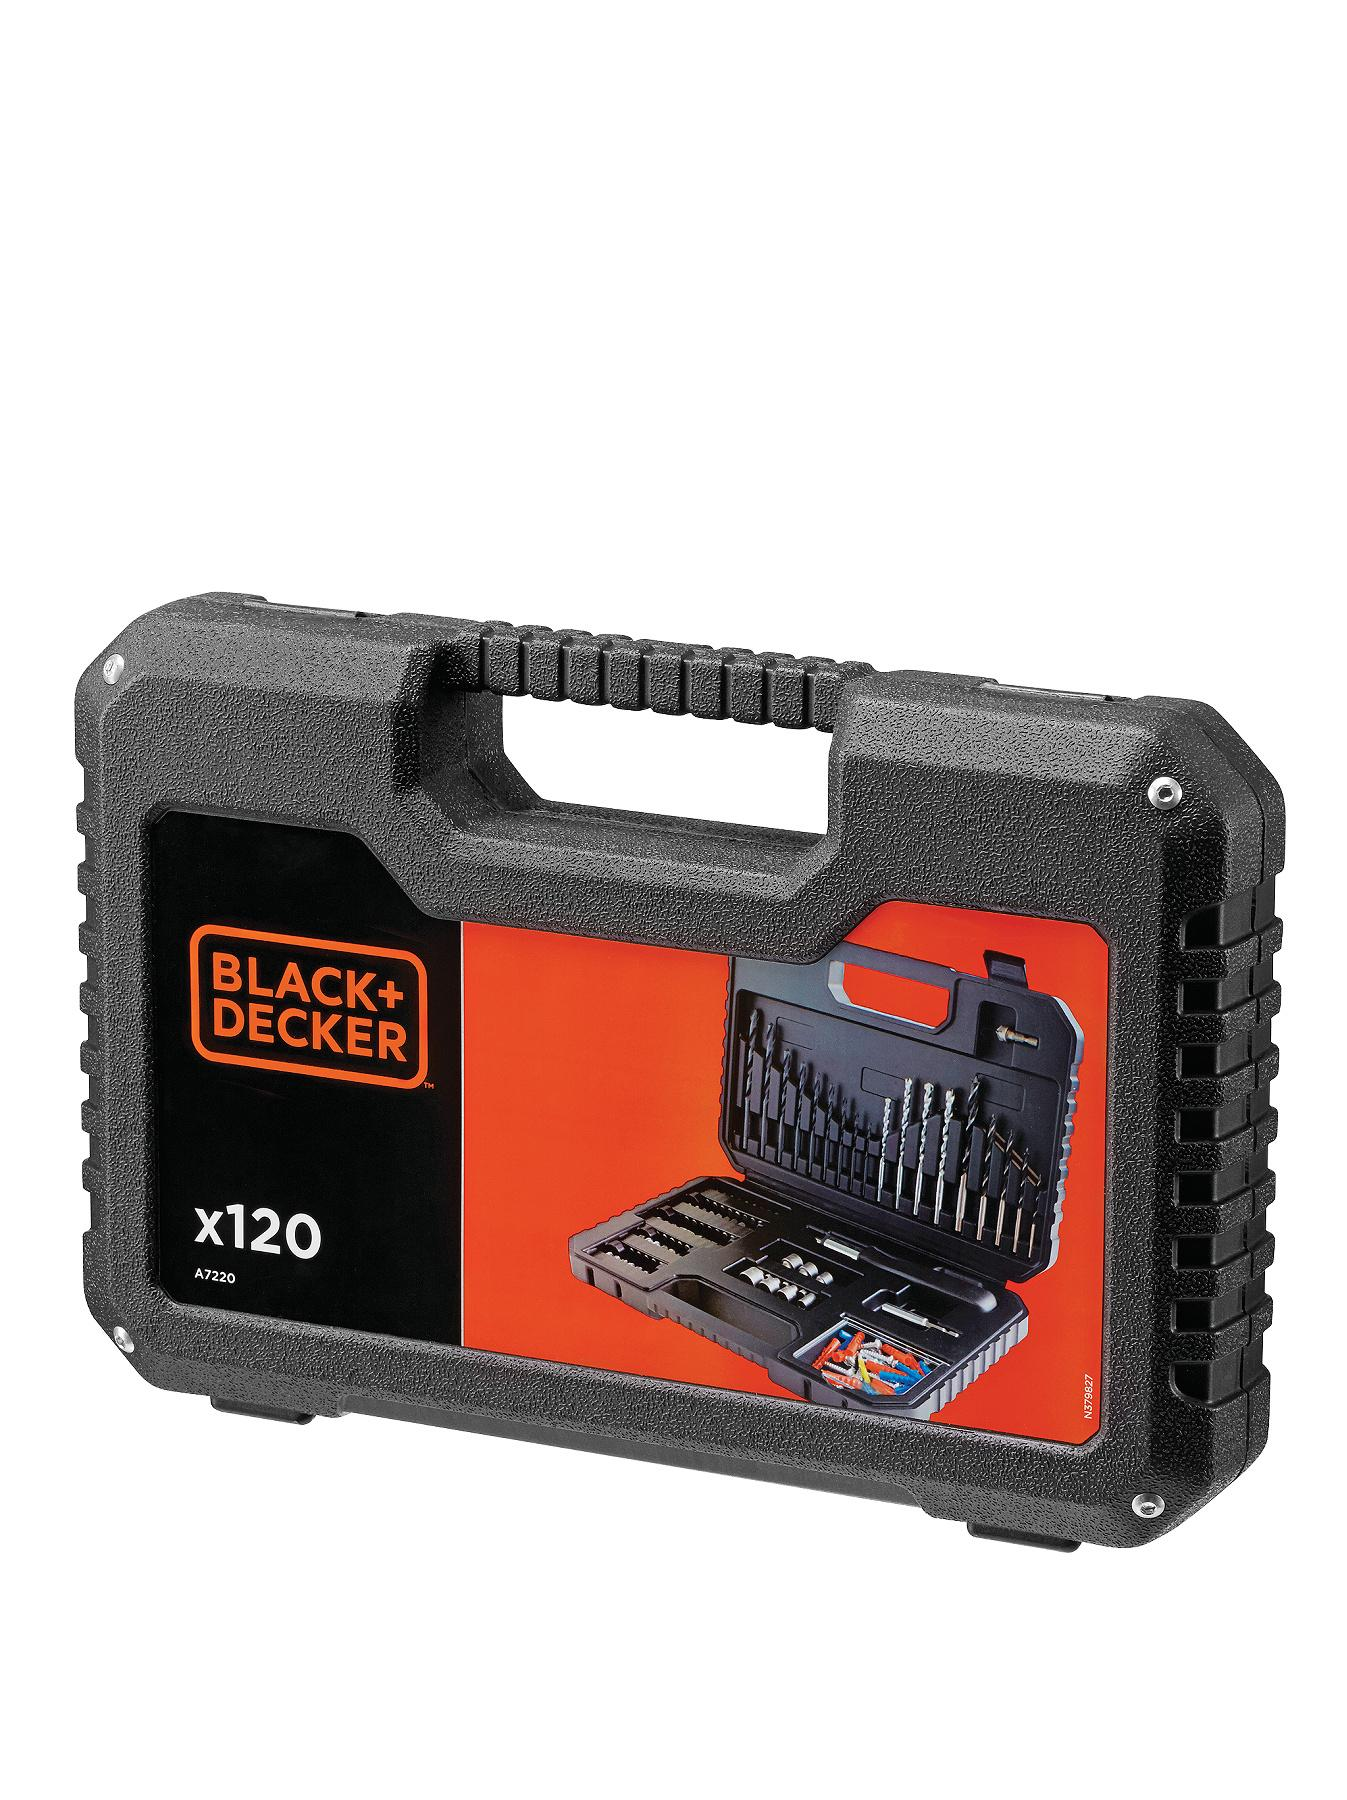 Black & Decker A7220-XJ 120-Piece Drilling and Screw Driving Set